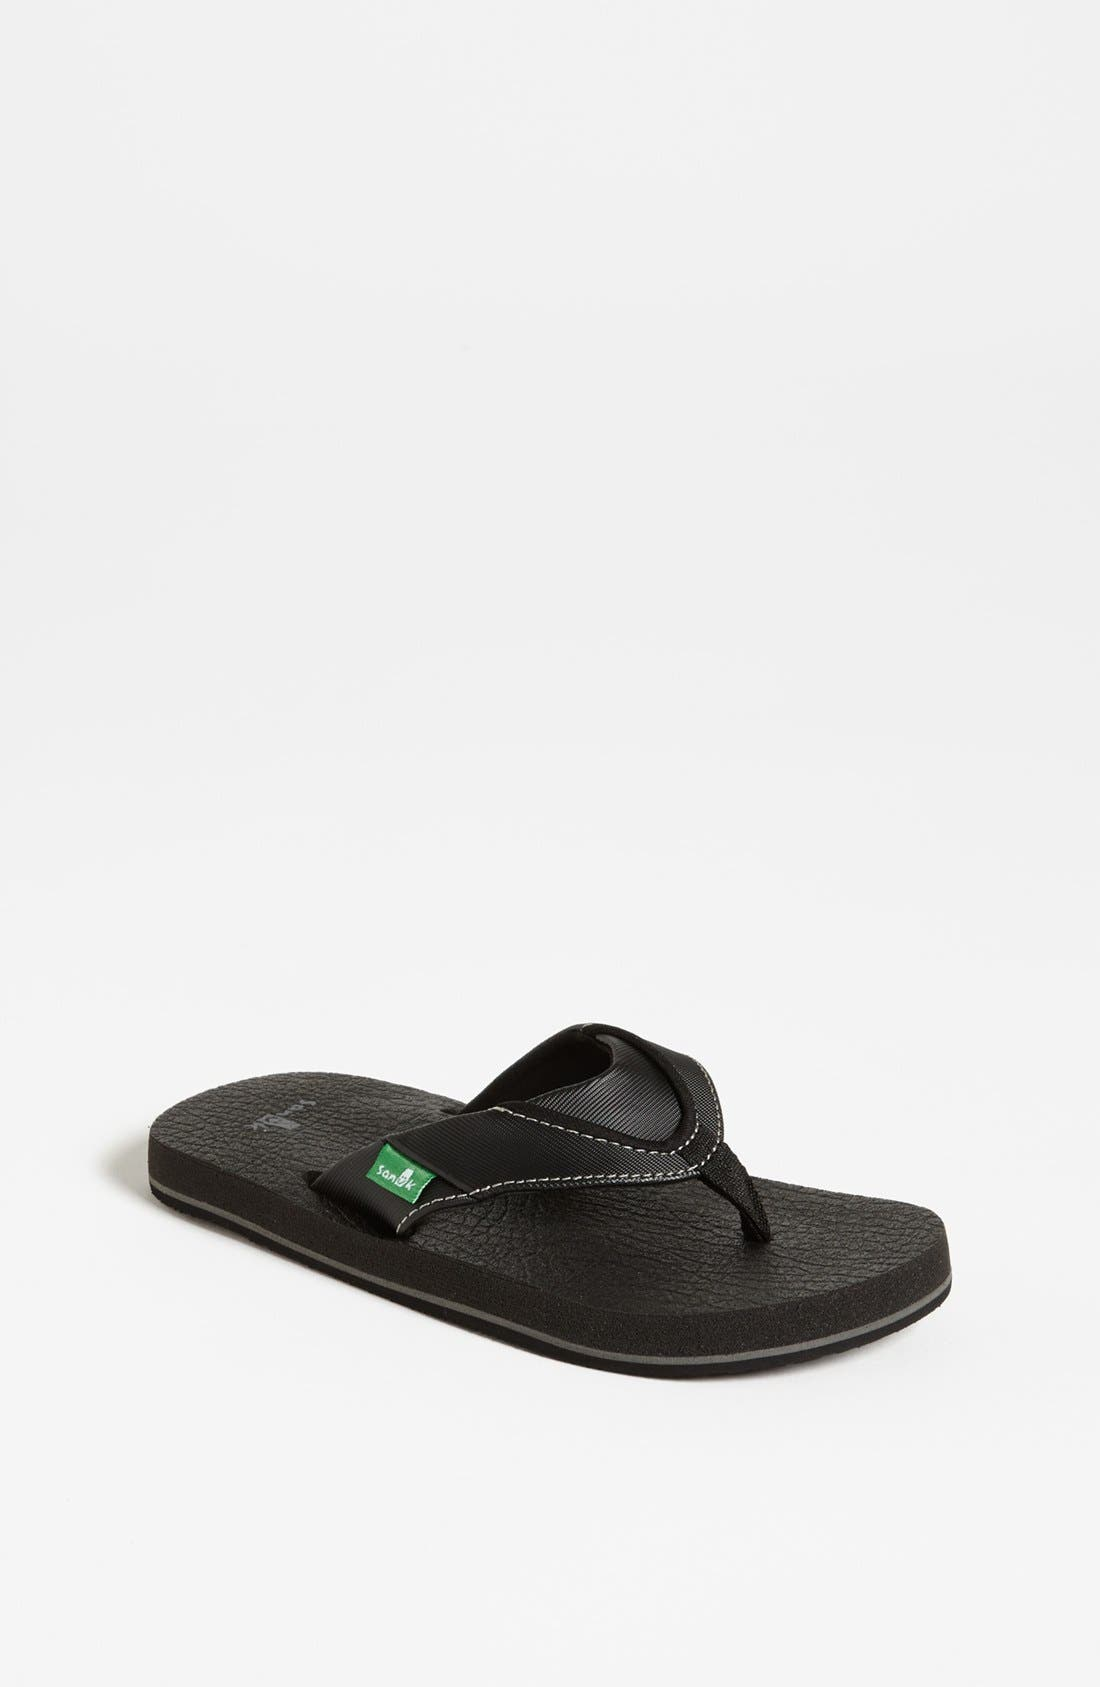 'Root Beer' Sandal,                             Main thumbnail 1, color,                             BLACK